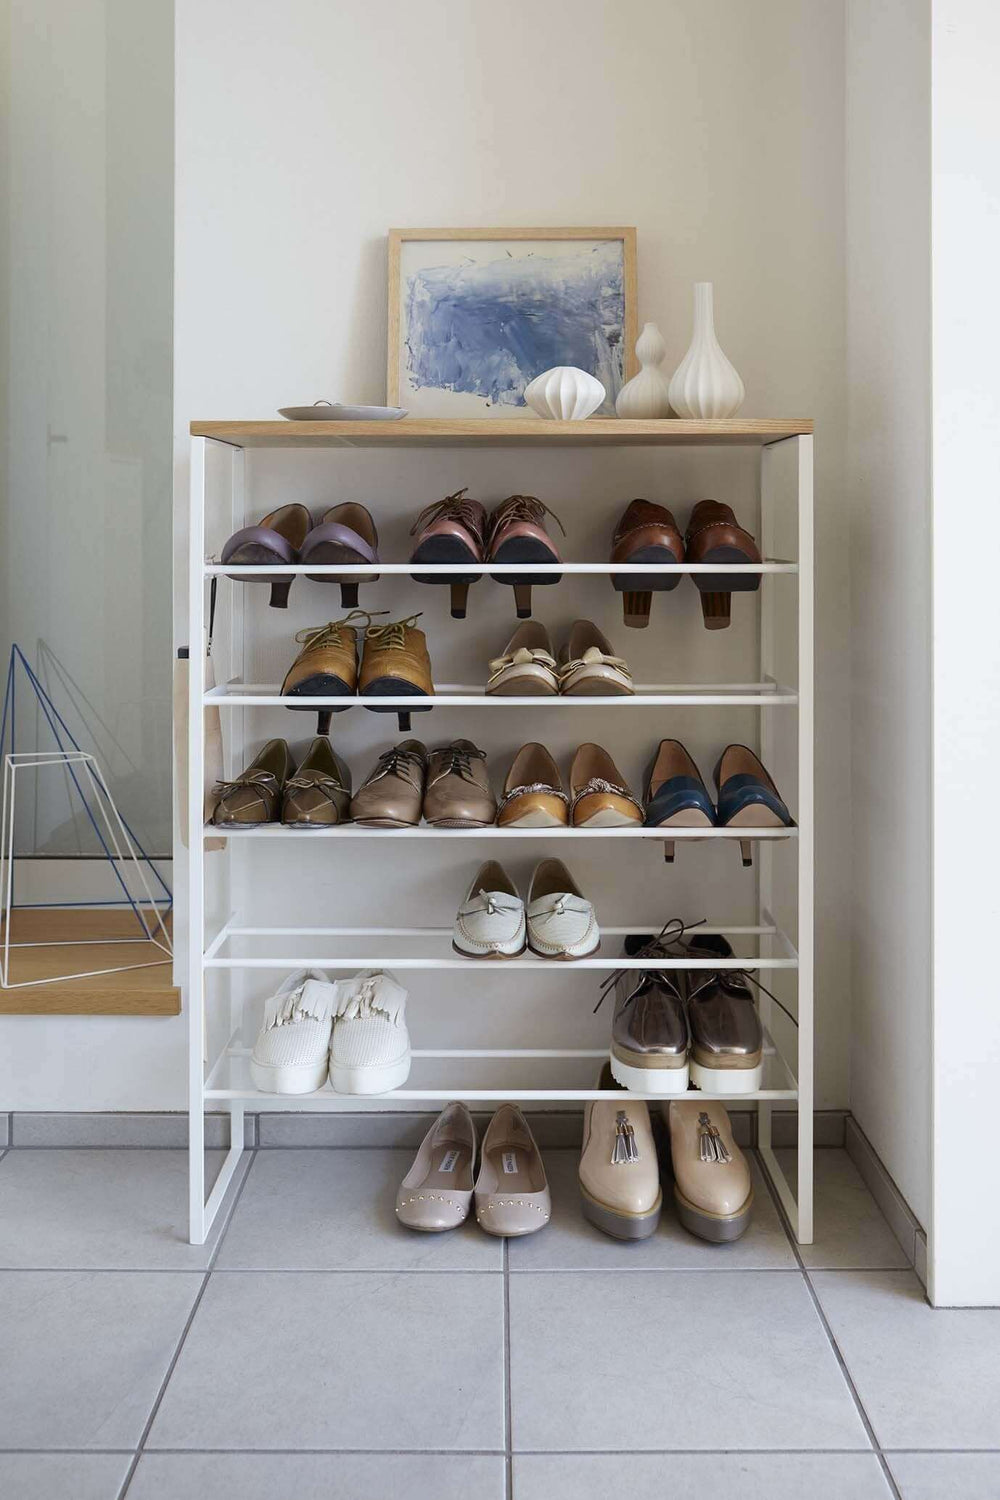 Straight-on view of Yamazaki's 6 Tier Wood Top Shoe Rack filled with shoes and household items, sitting next to a doorway on a tile floor.